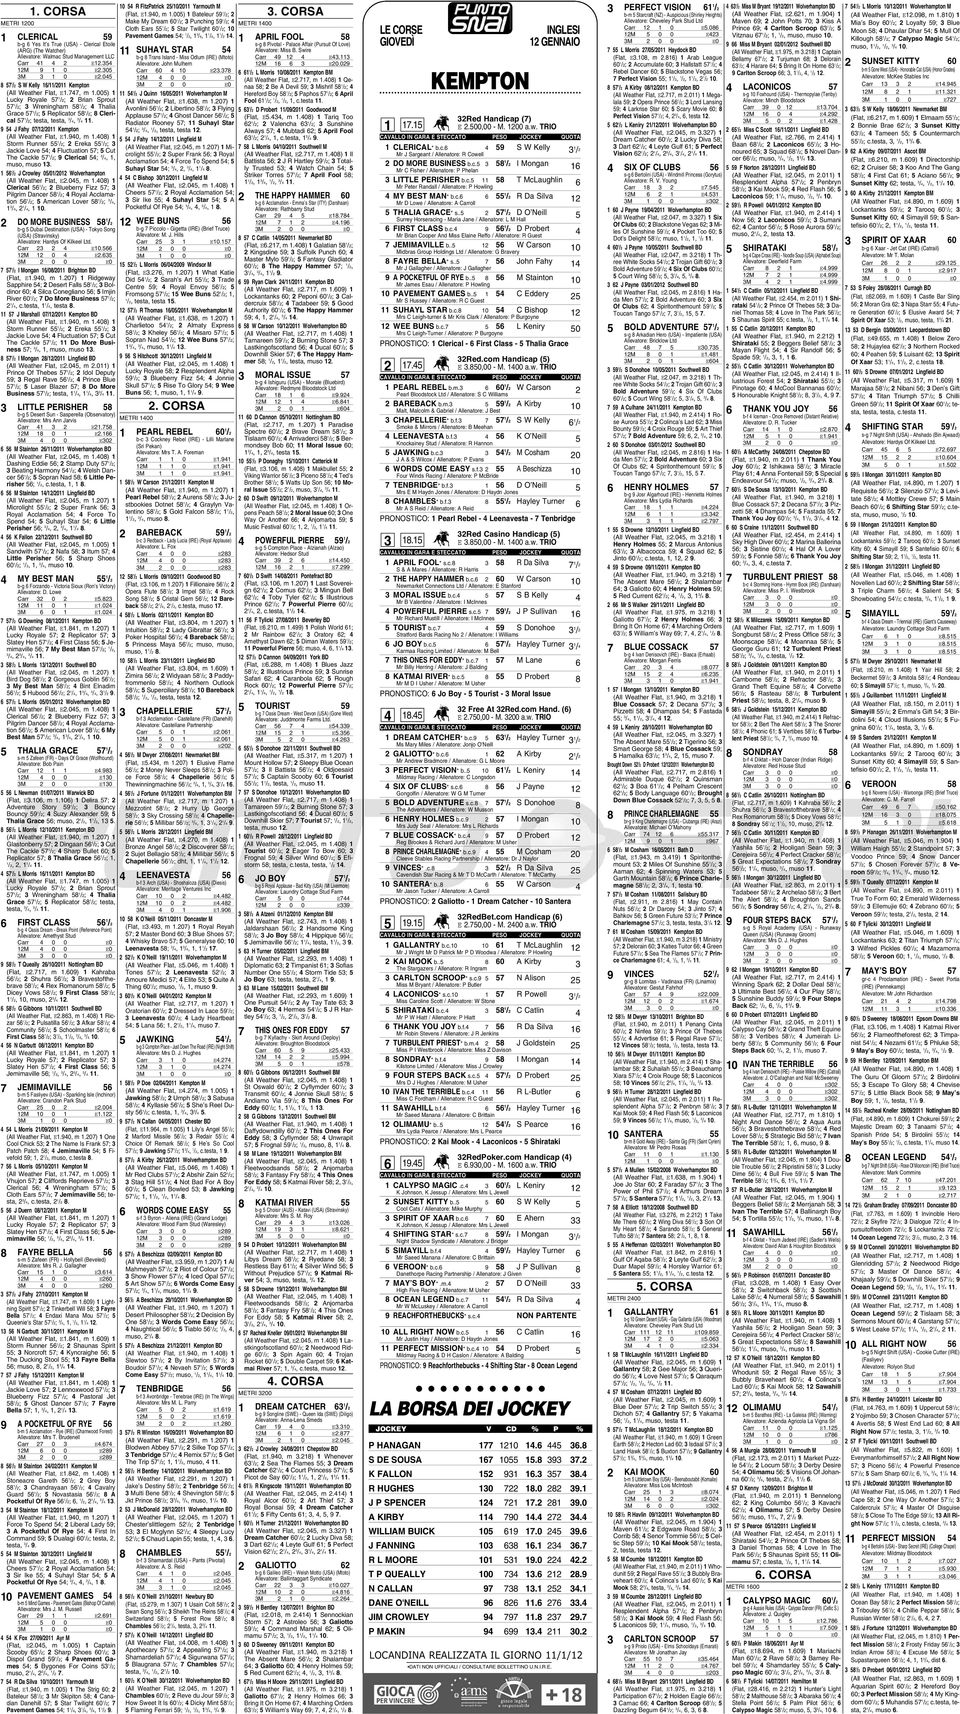 0) Storm Runner /; Ereka /; Jackie Love ; Fluctuation ; Cut The Cackle /; Clerical ; /,, muso, muso. / J Crowley 0/0/0 Wolverhampton (All Weather Flat, E.0, m.